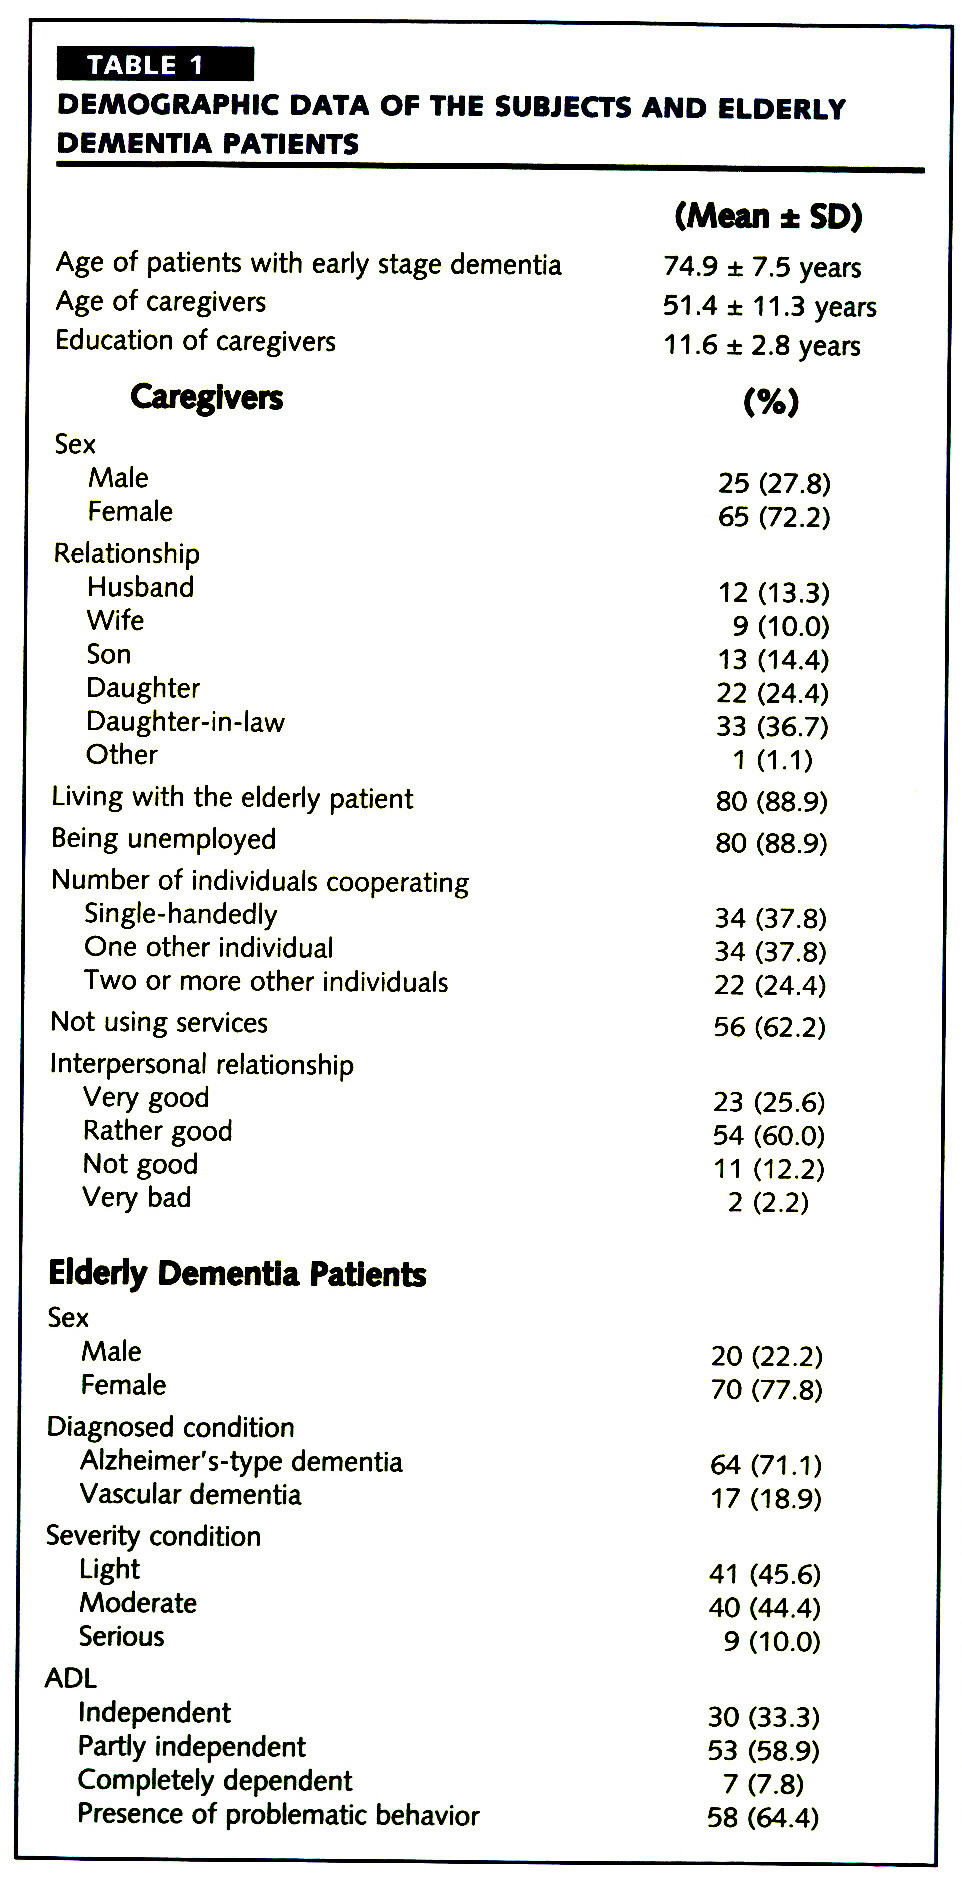 TABLE 1DEMOGRAPHIC DATA OF THE SUBJECTS AND ELDERLY DEMENTIA PATIENTS